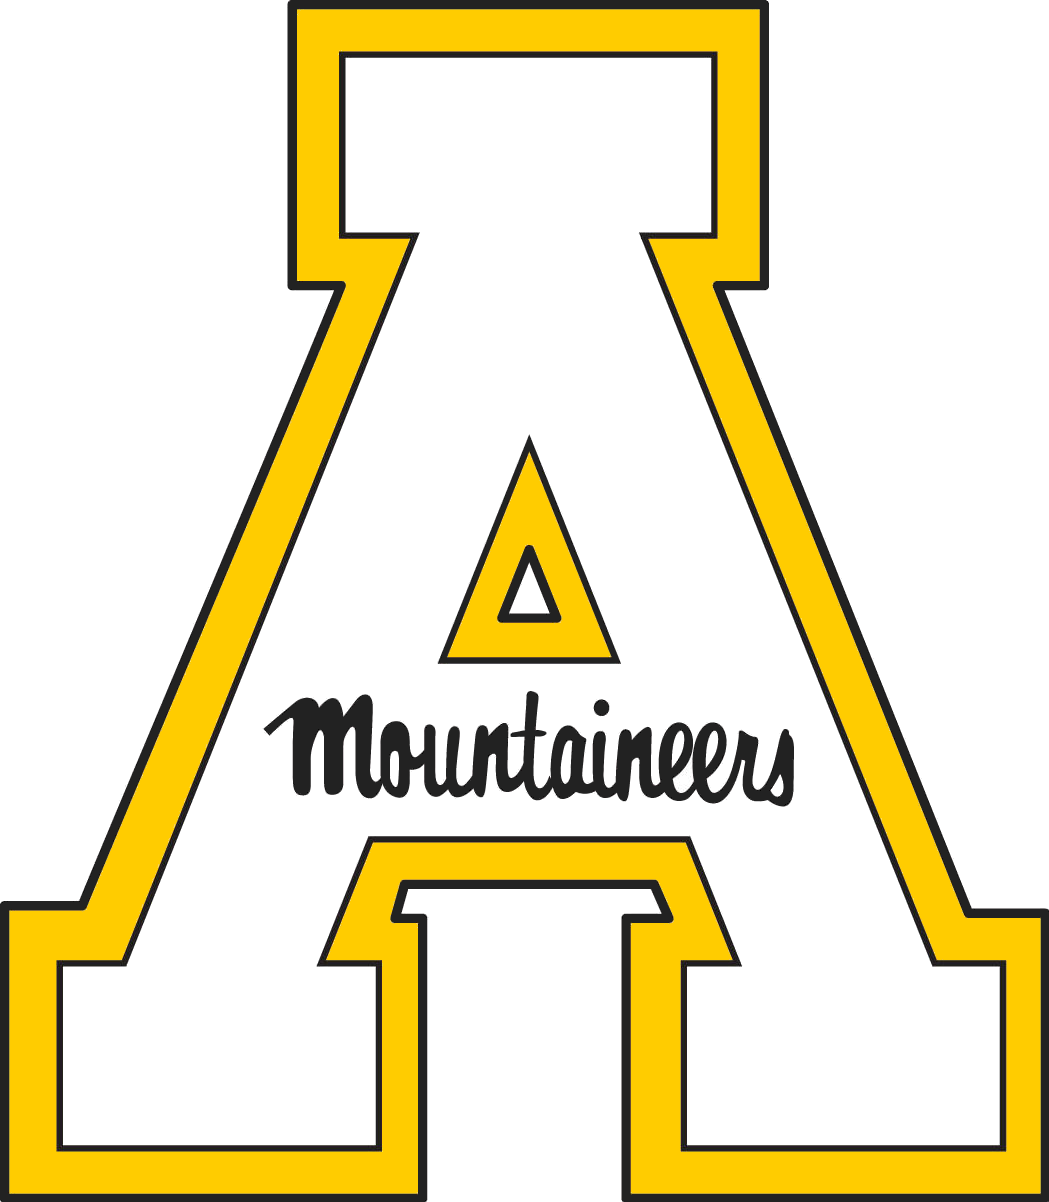 2010 Appalachian State Mountaineers football team